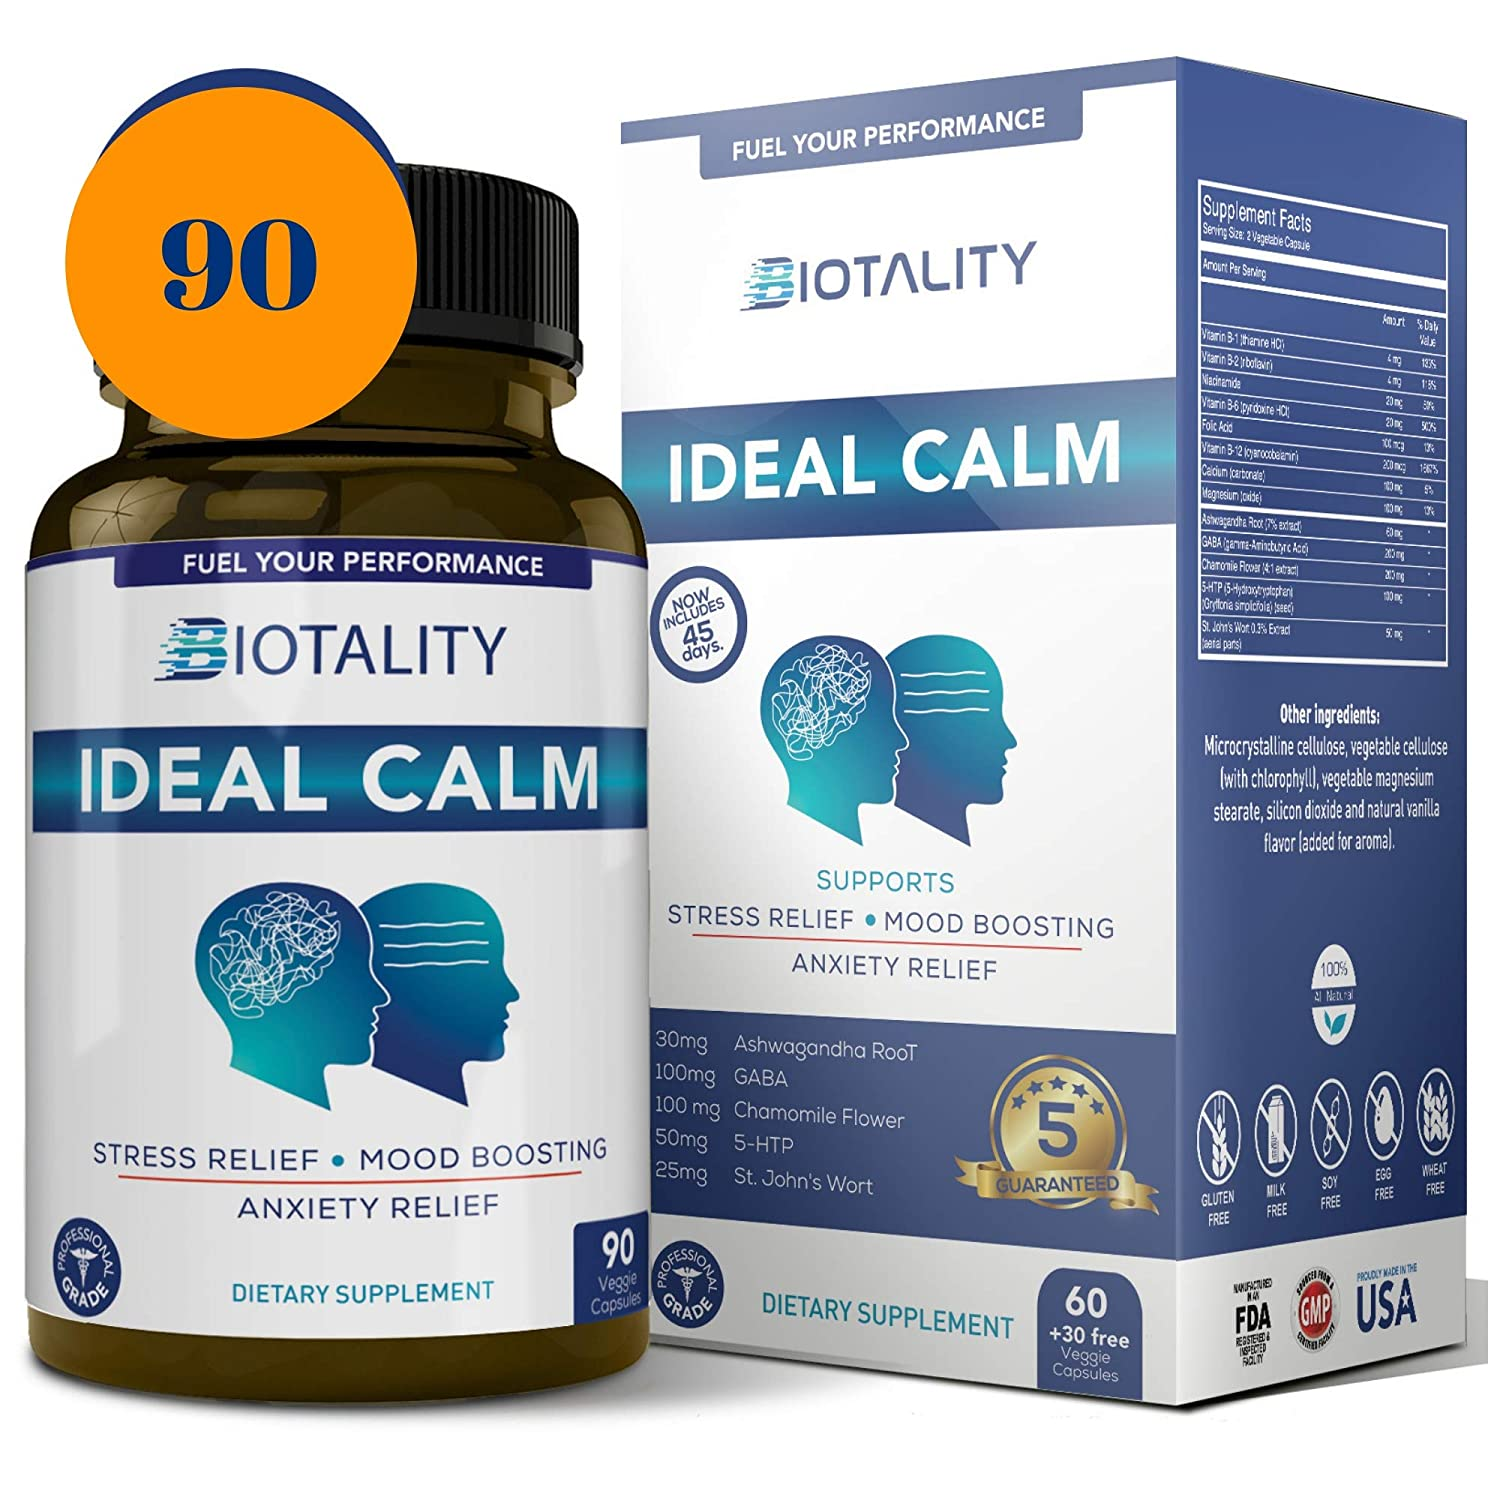 Ideal Calm Natural Mood Enhancer and Mood stabilizer Serotonin Mood Booster and cortisol Manager for Natural Anxiety Relief, 6 Week Supply with Ashwagandha, Chamomile, St. John s Wort